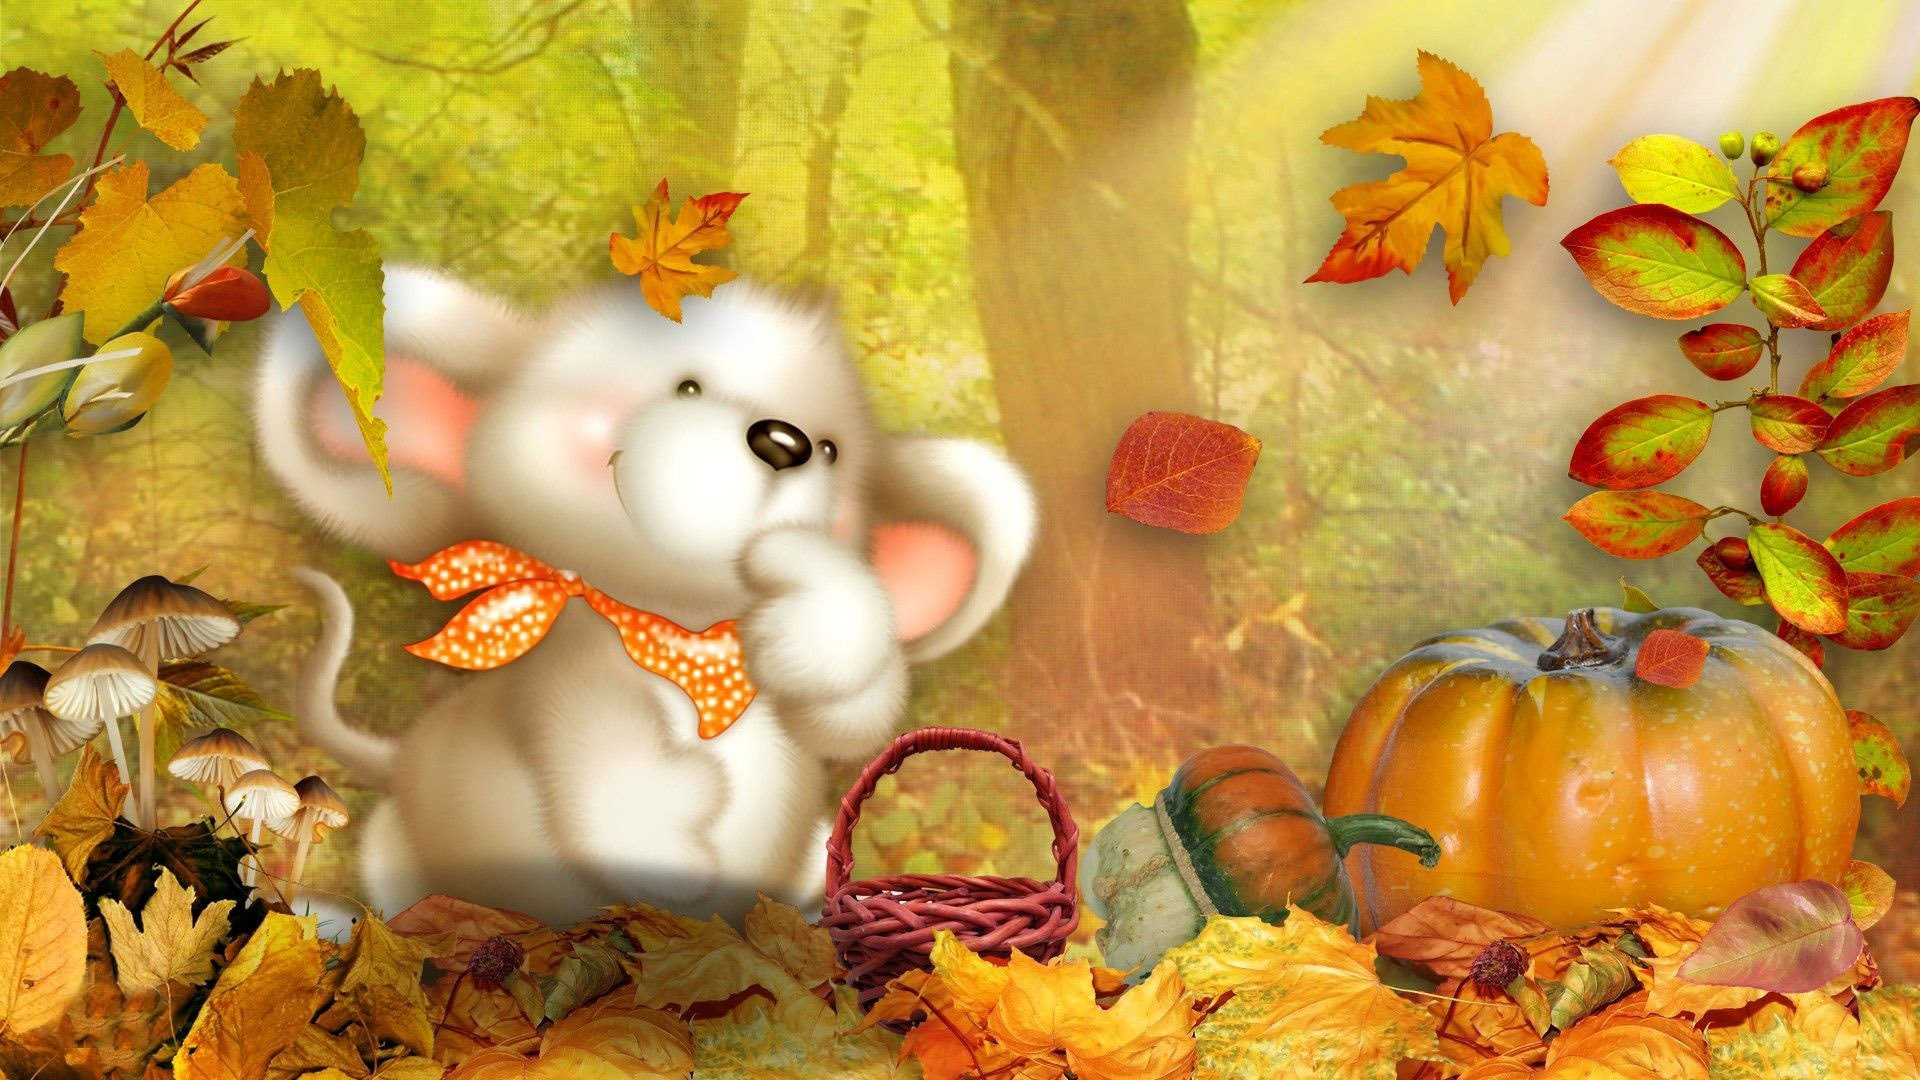 Fluffy Dog In An Autumn Scene Wallpaper – WallDevil